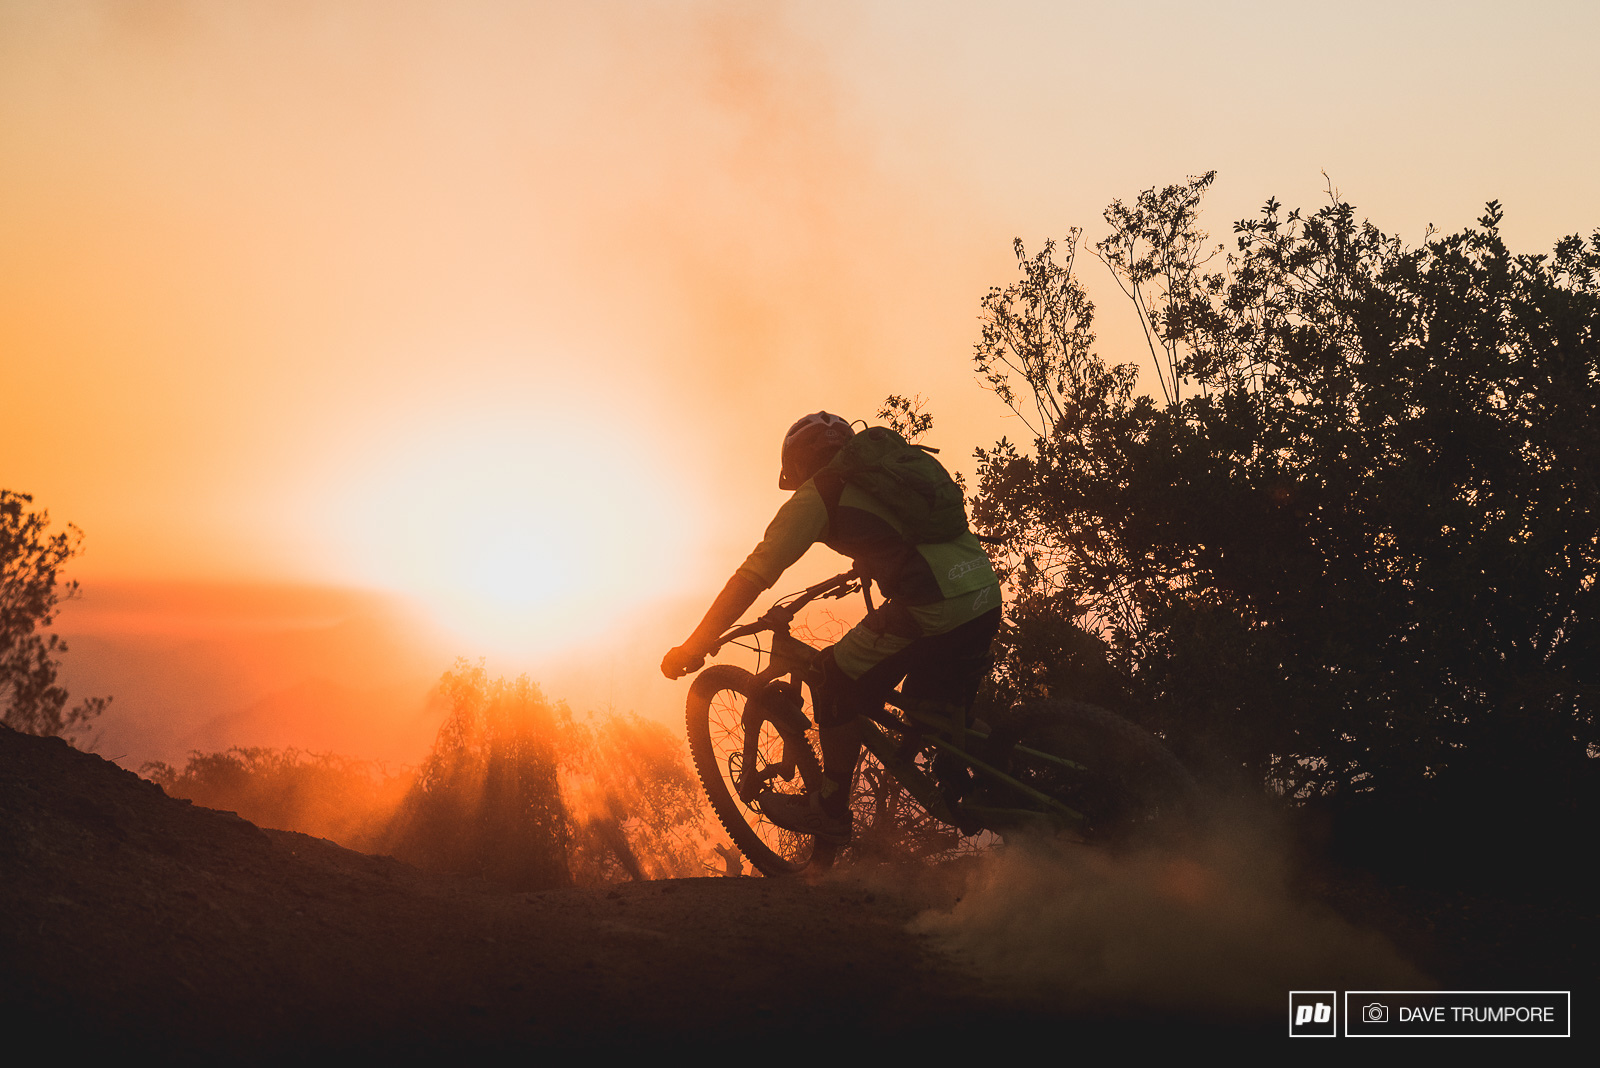 Jerome Clementz drifts into yet another epic Chilean sunset on the eve of his first big race in 2017.